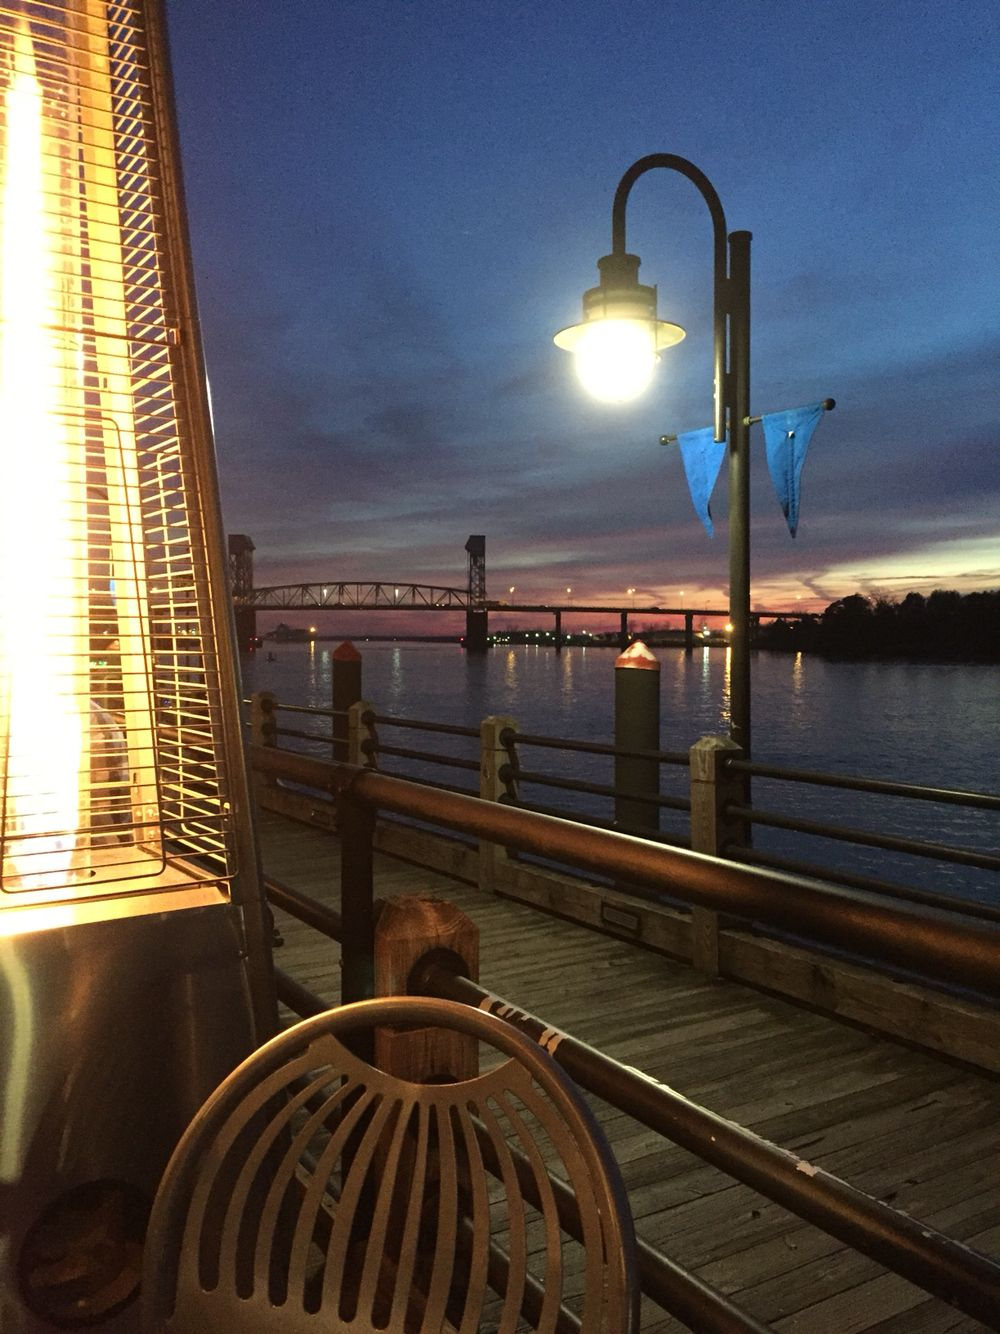 The George Restaurant On Riverwalk Dock Dine In Historic Downtown Wilmington Nc